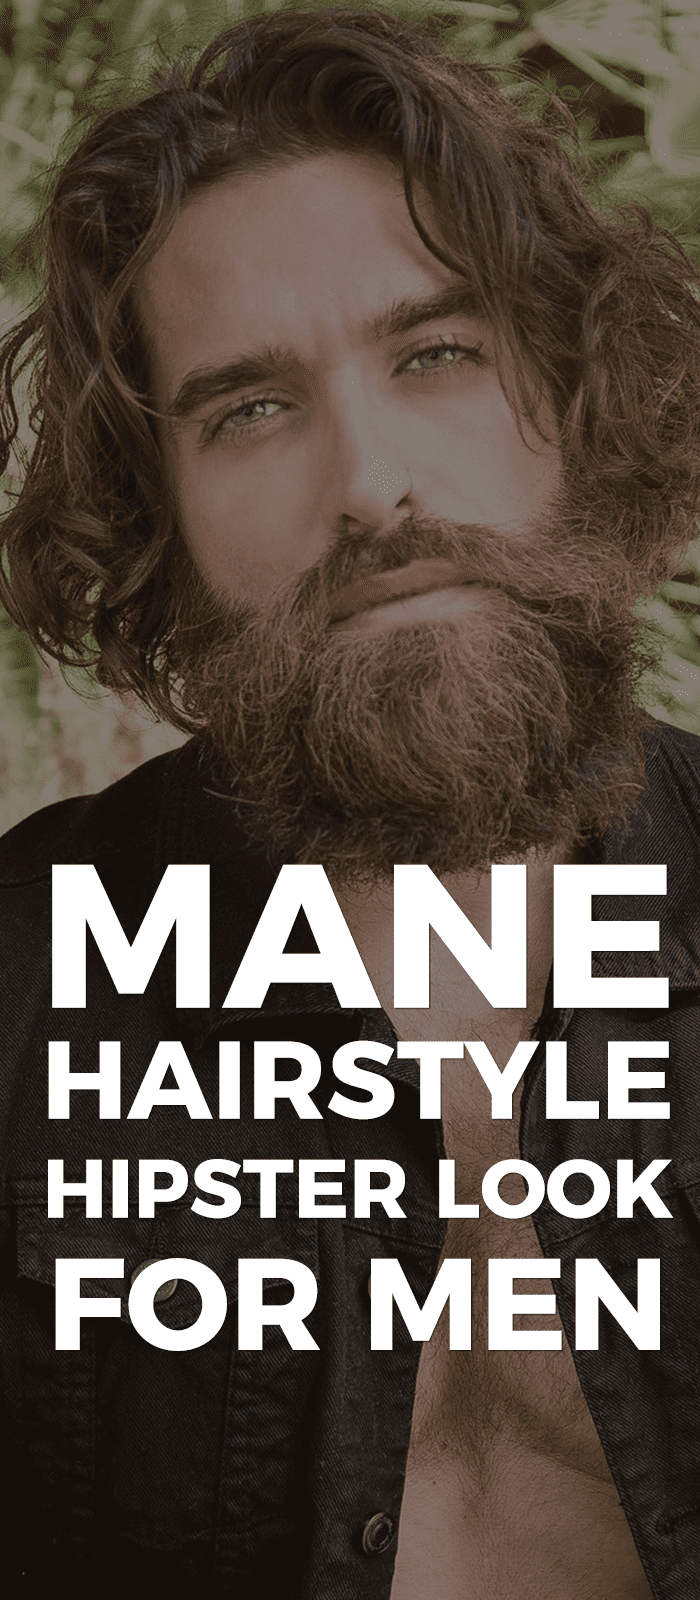 Trending Hipster Hairstyle for men